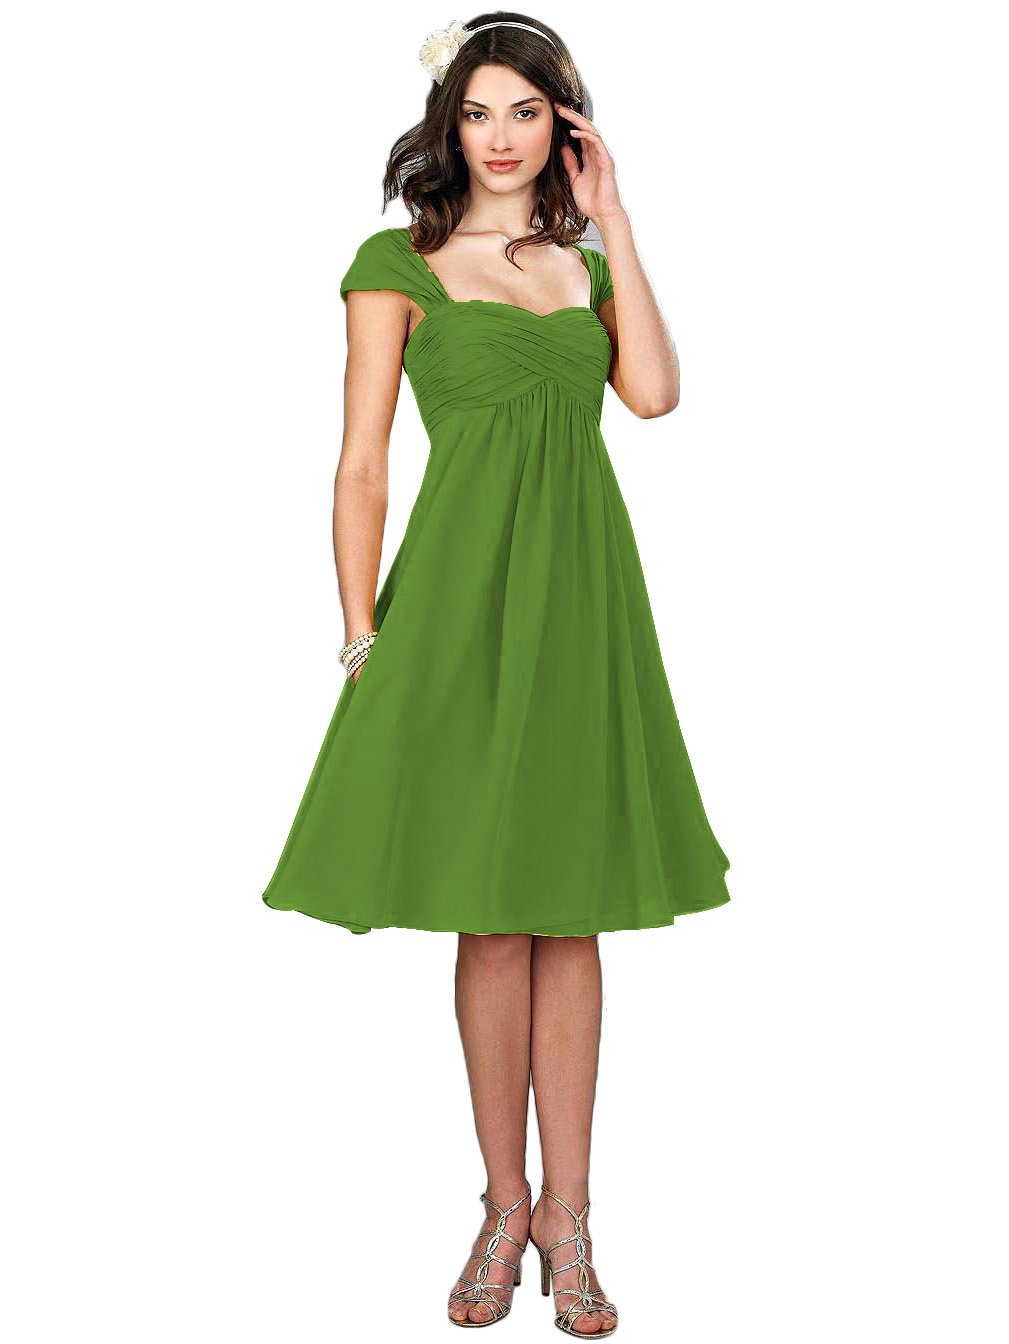 ThaliaDress Cap Sleeve Bridesmaid Evening Dresses Prom Gowns T274LF Green US18W